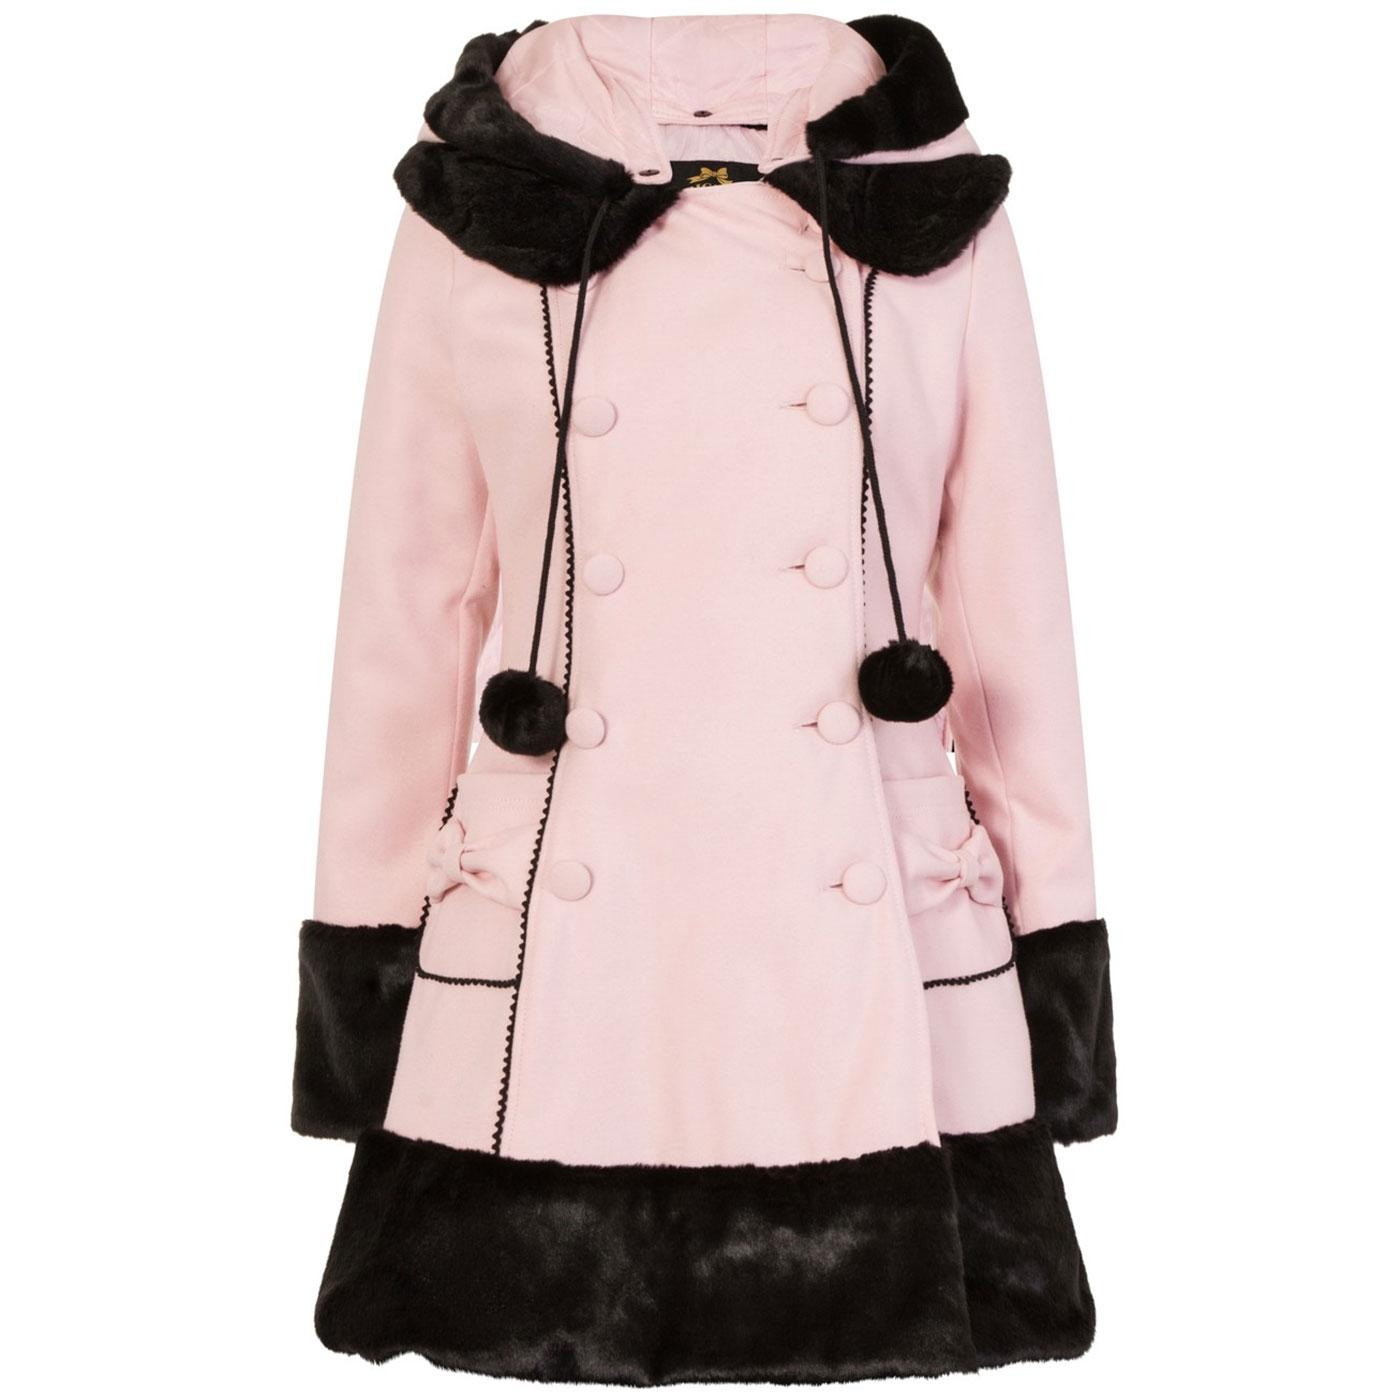 Sarah Jane HELL BUNNY Womens Vintage Winter Coat P